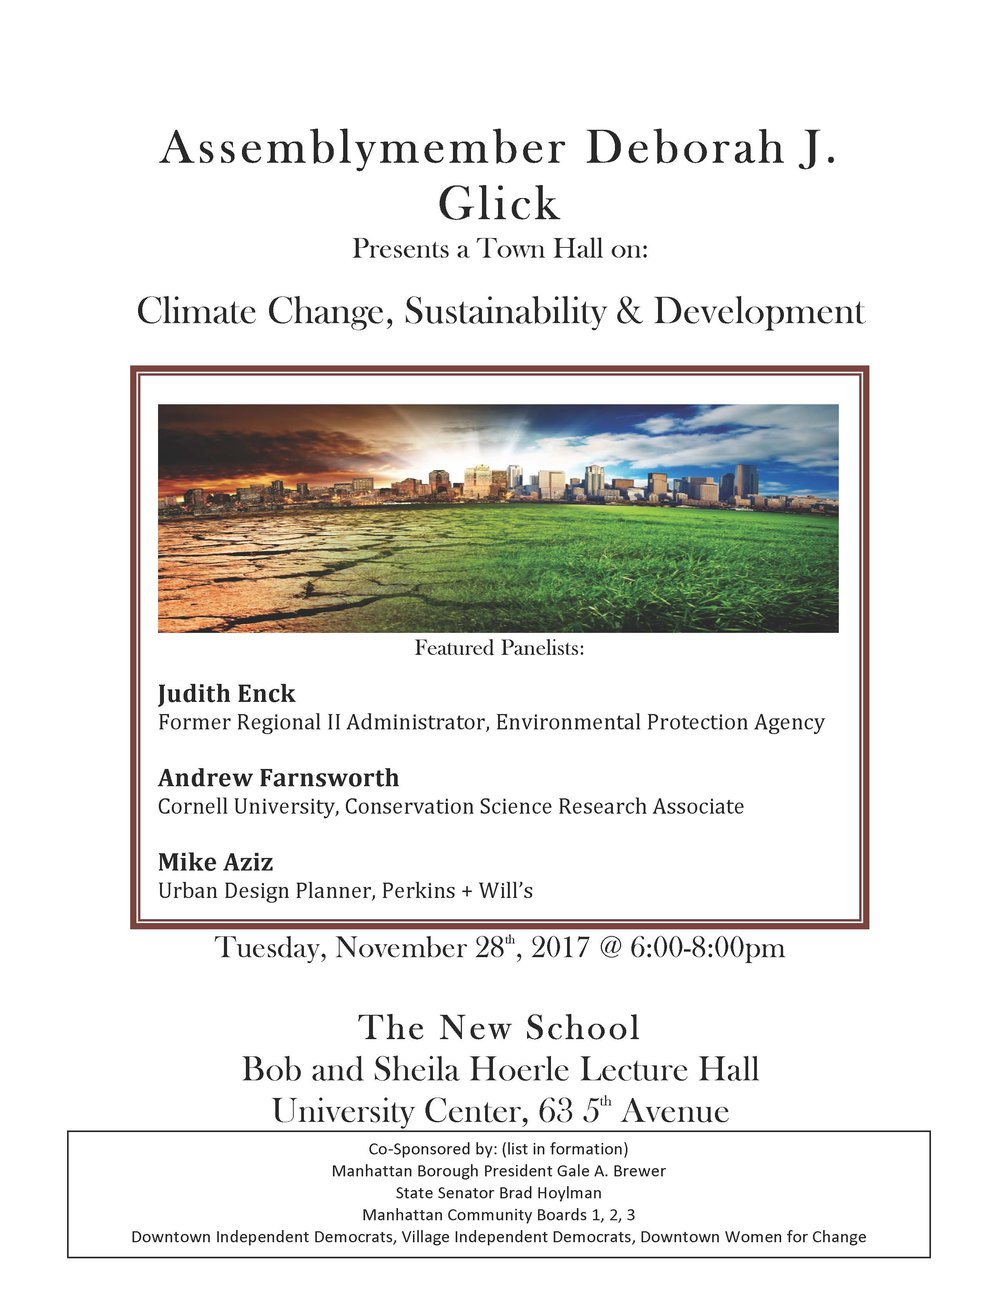 Updated_AM Glick_Town Hall Flyer_ 11 2 17.jpg